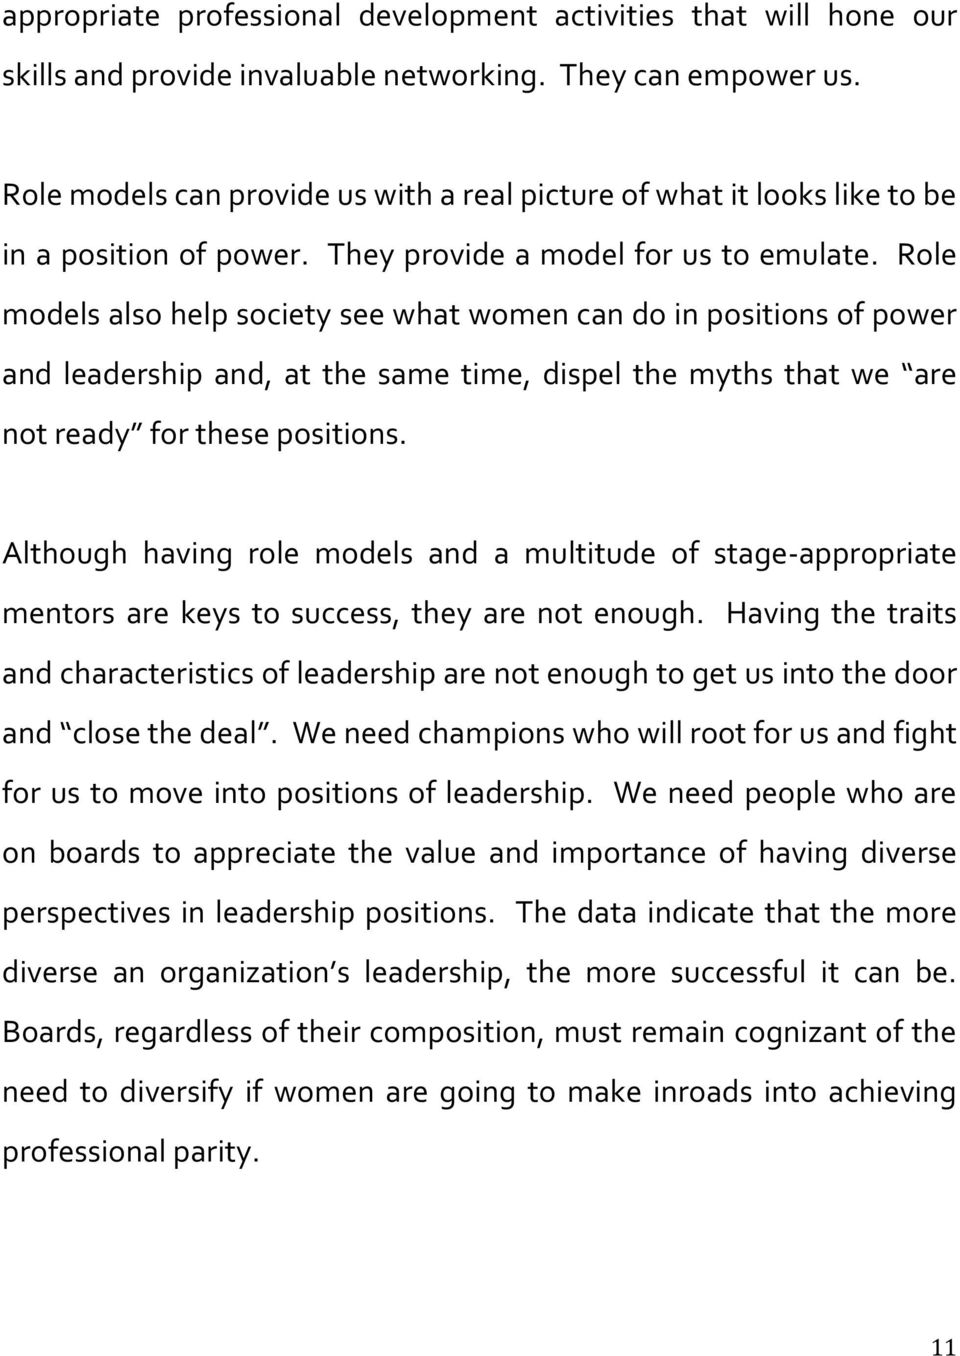 Role models also help society see what women can do in positions of power and leadership and, at the same time, dispel the myths that we are not ready for these positions.